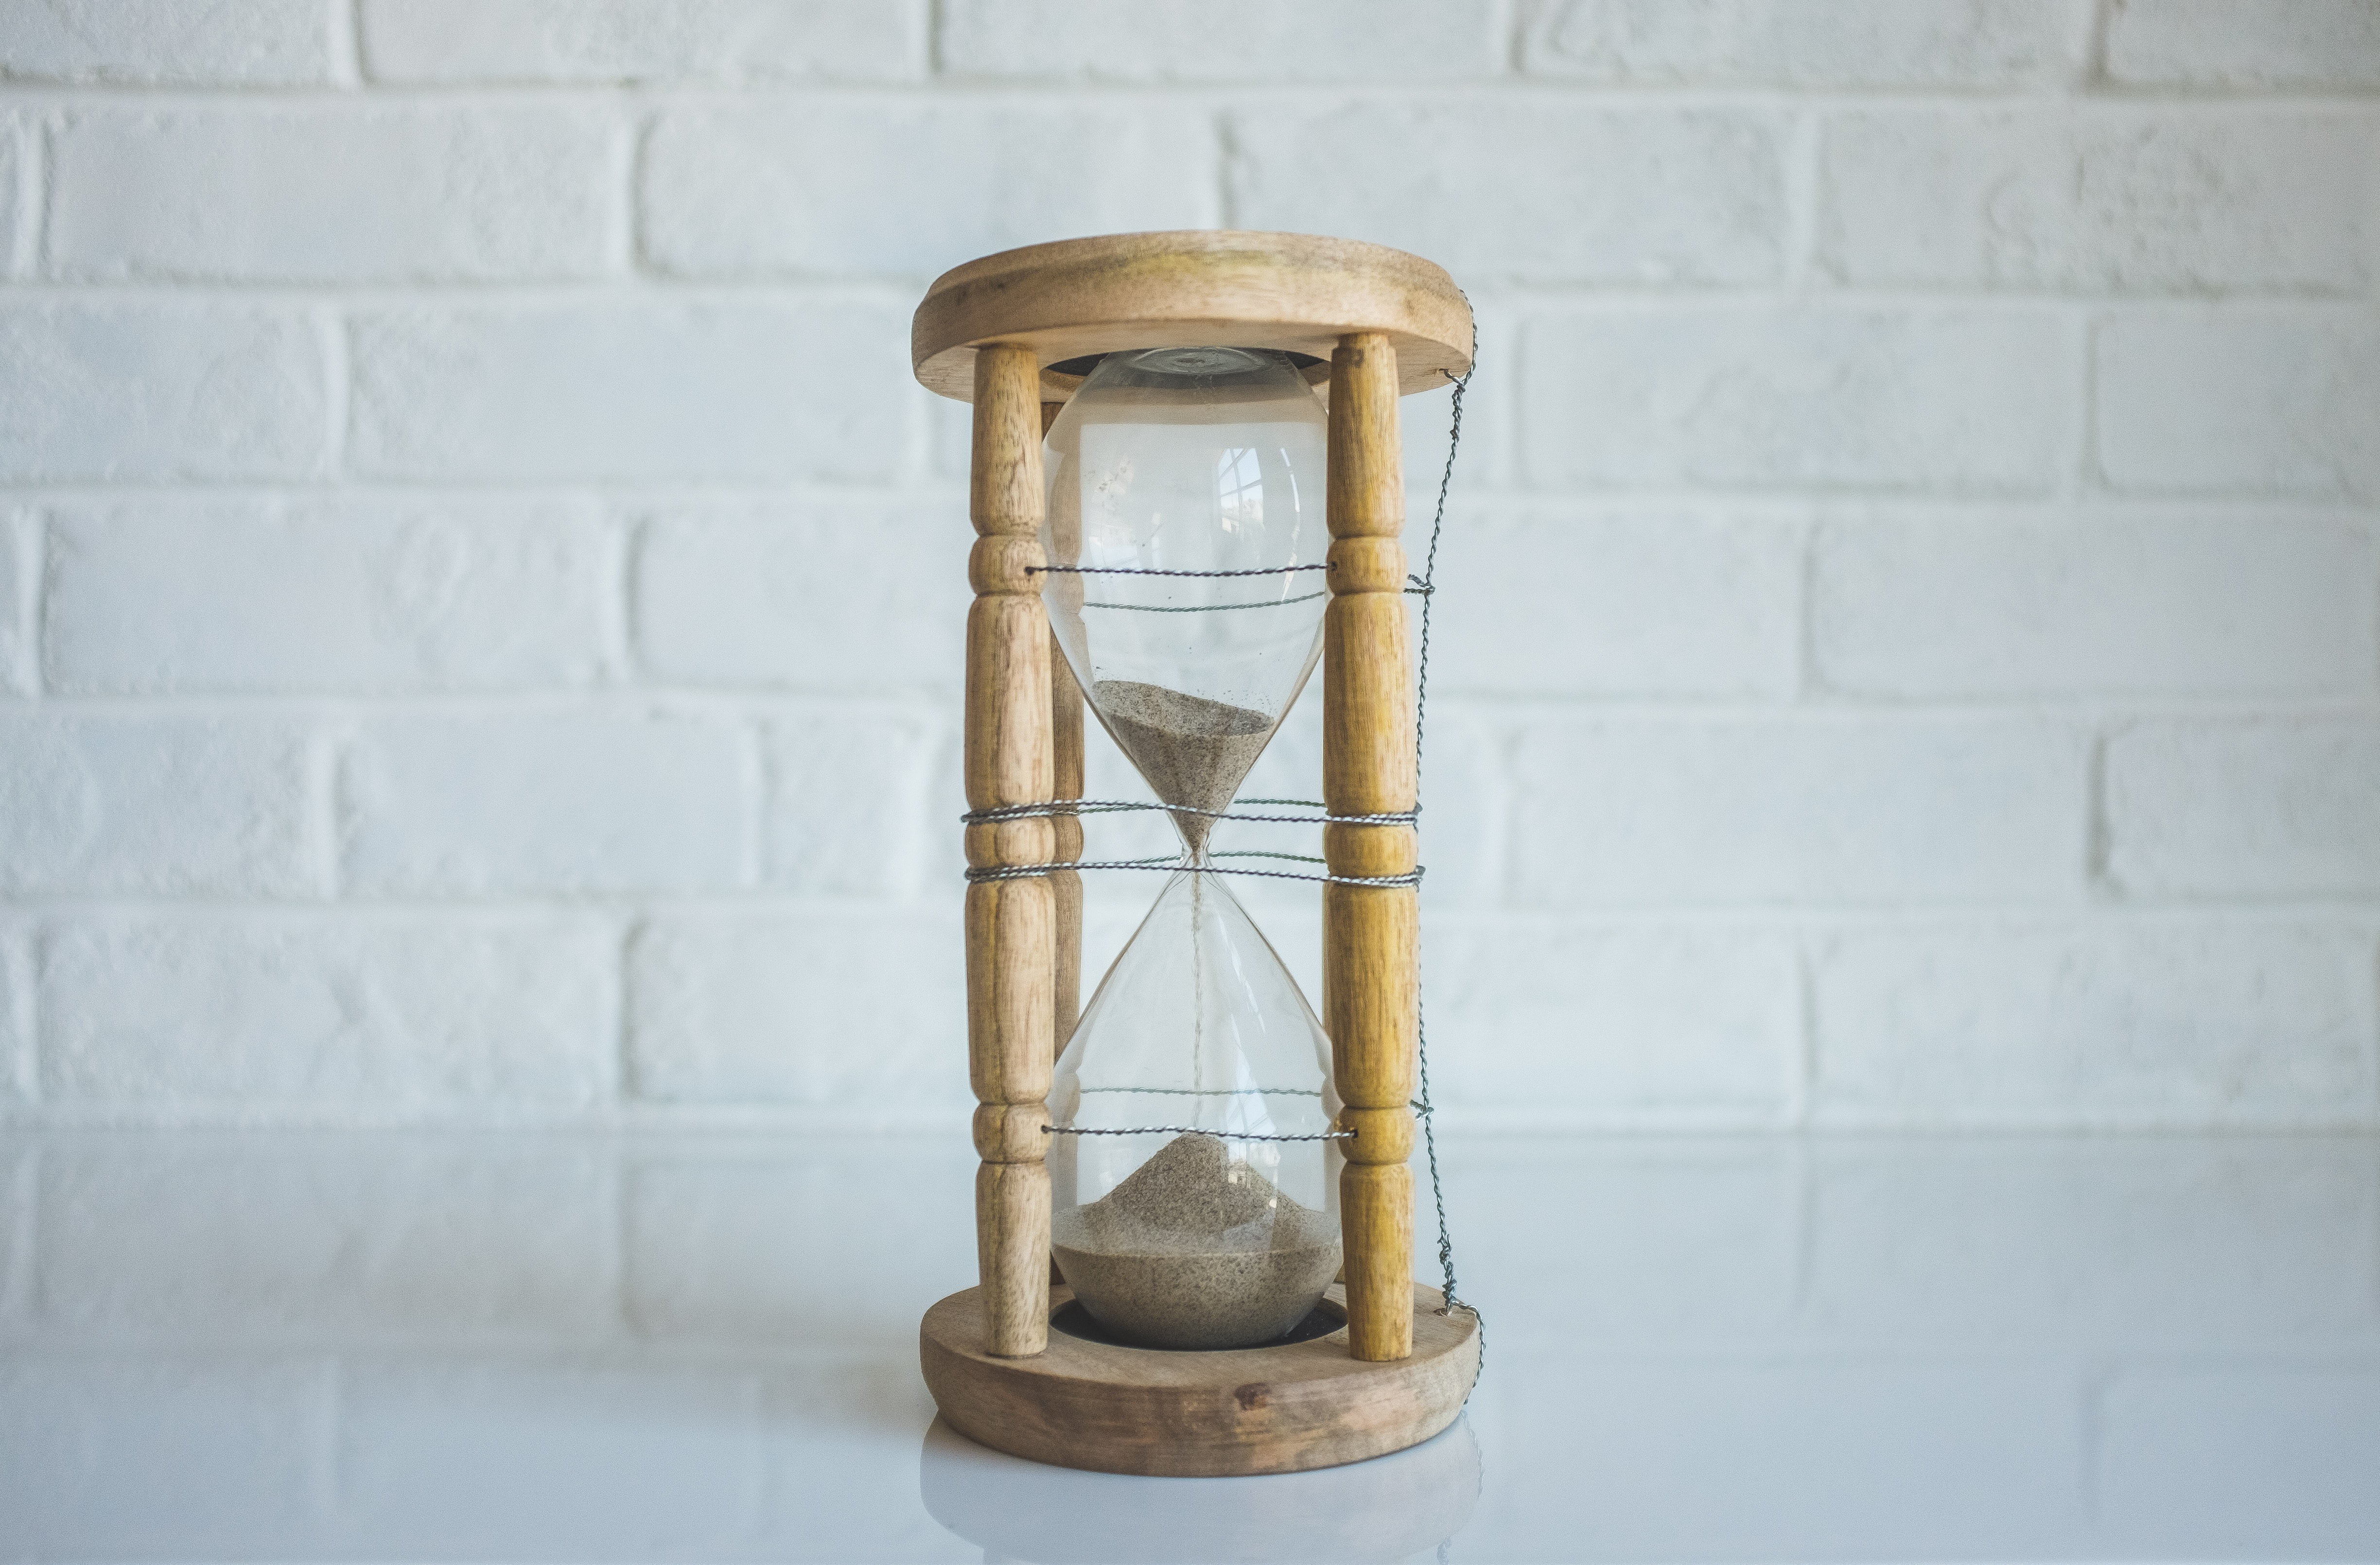 What to look for in a Voiceover Artist - An image of an hourglass